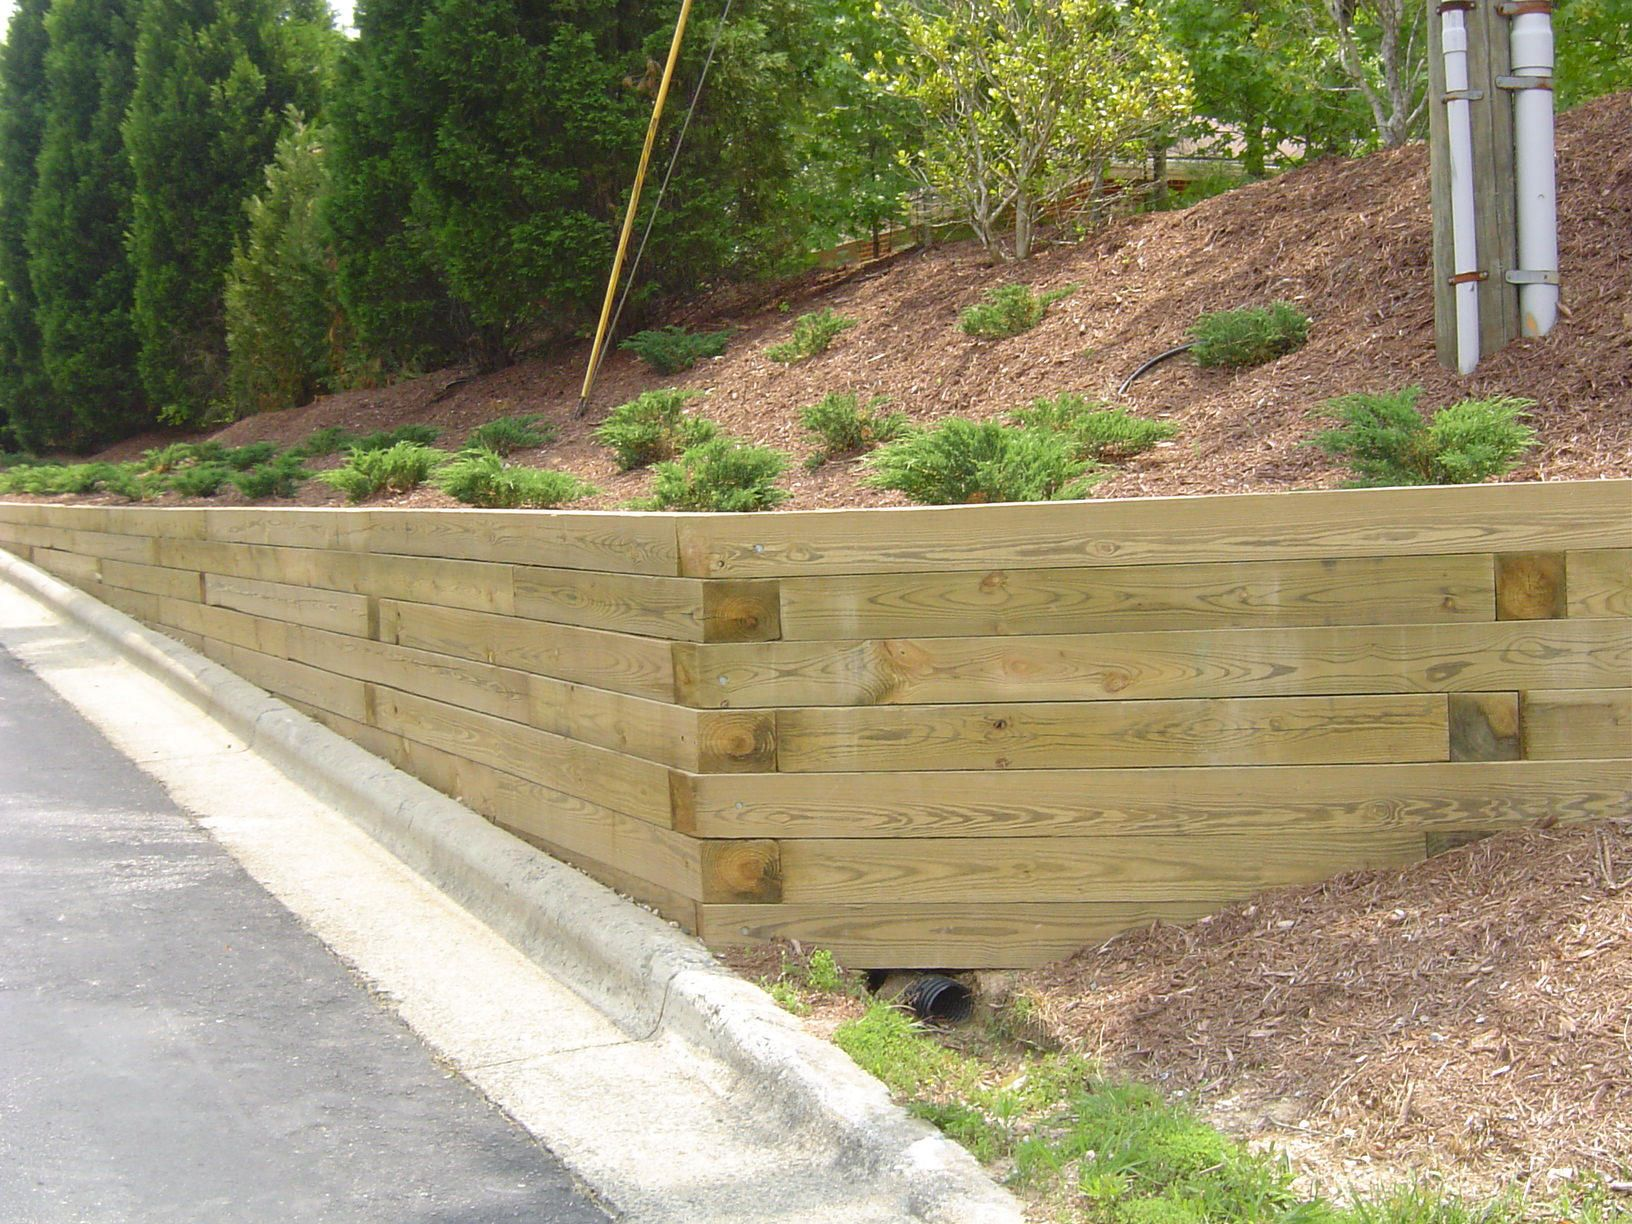 Treated Wood Retaining Wall Design